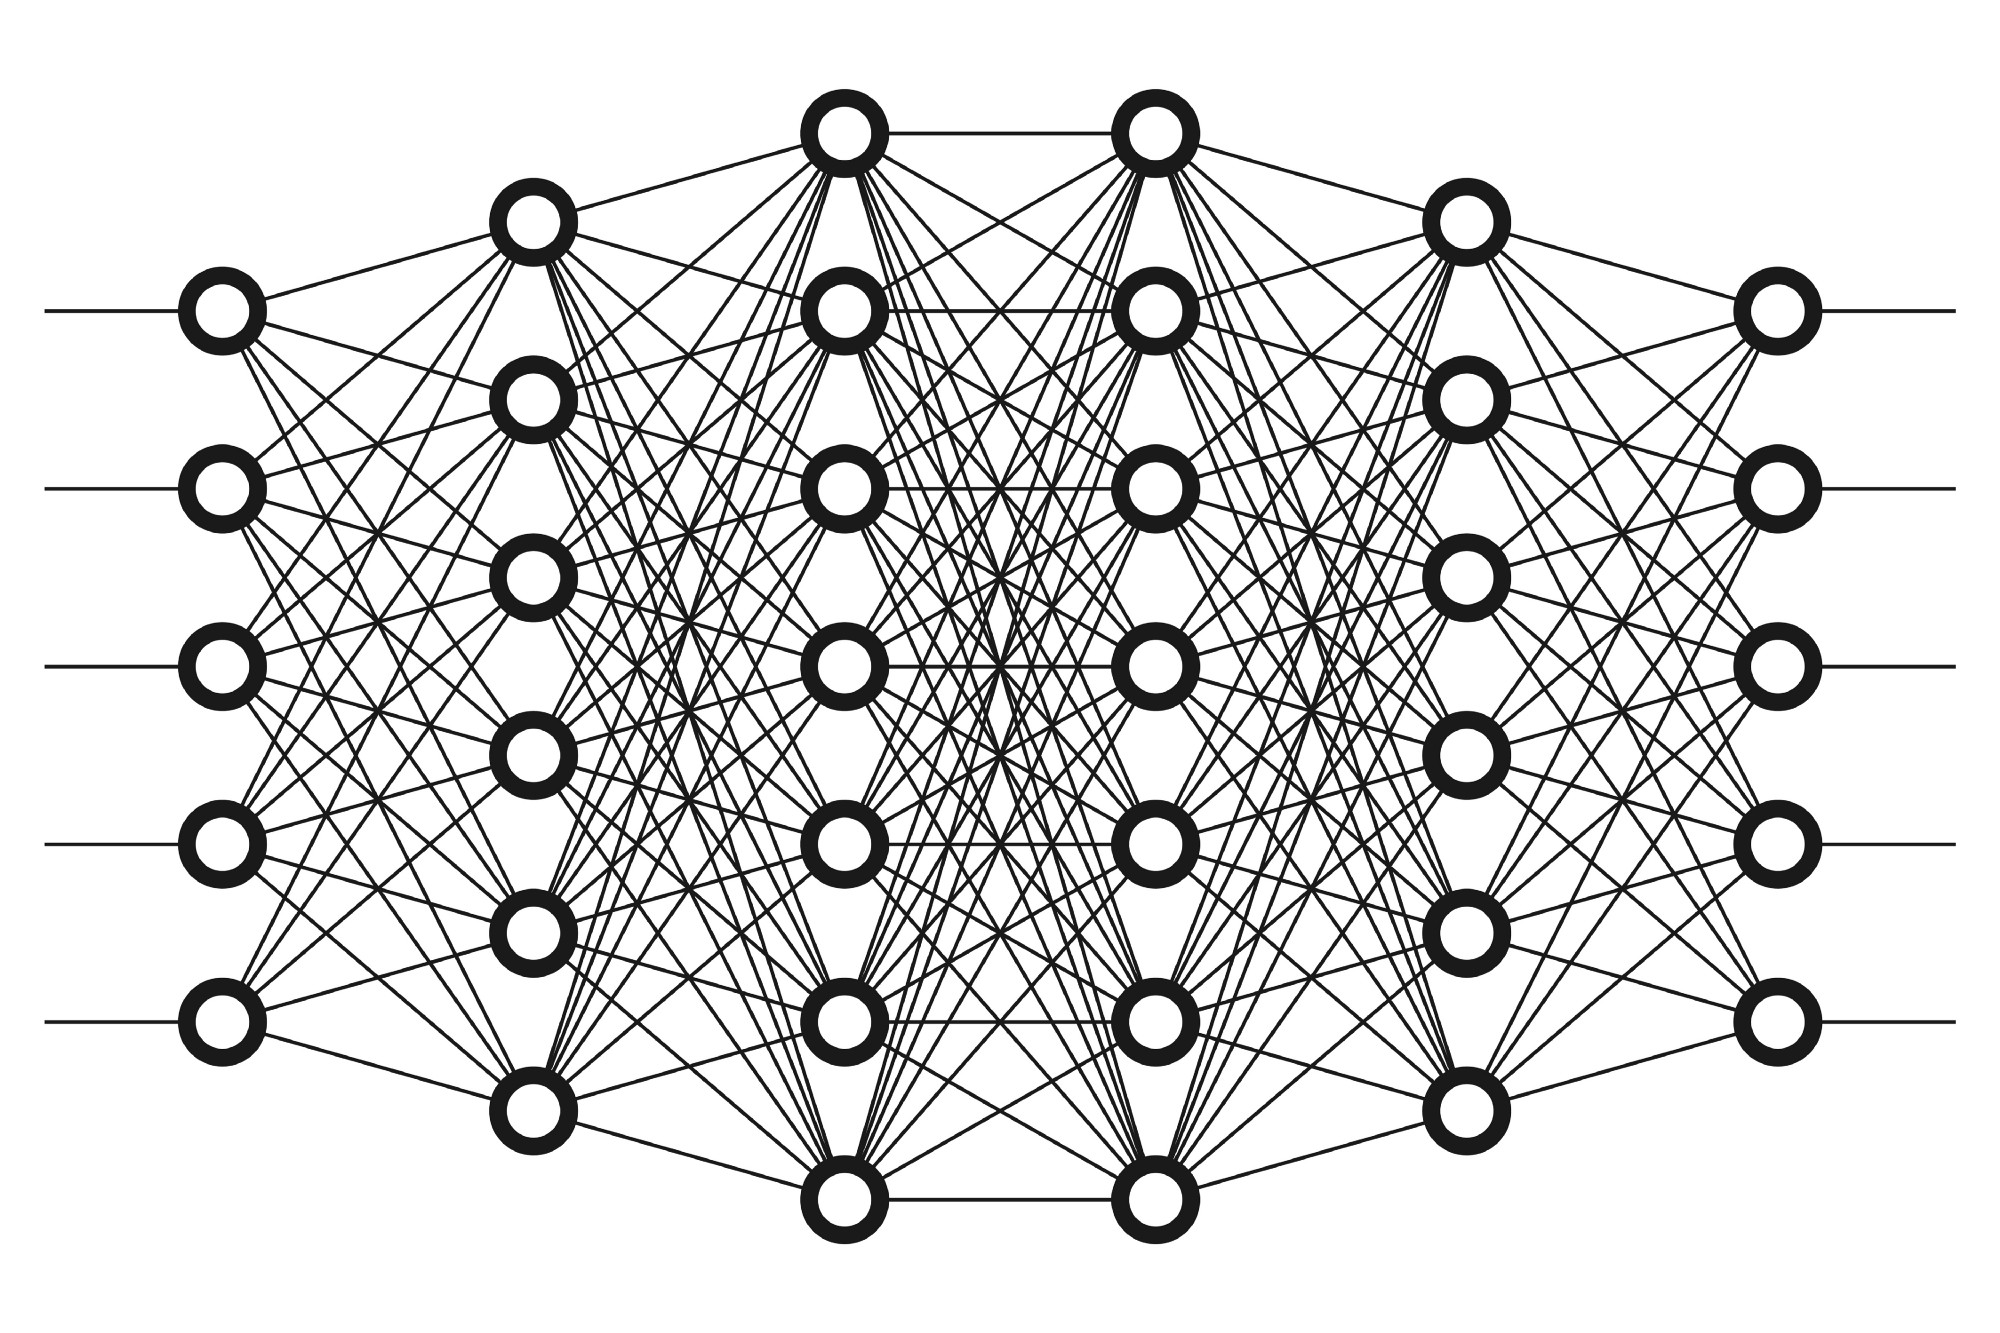 Deep learning structure